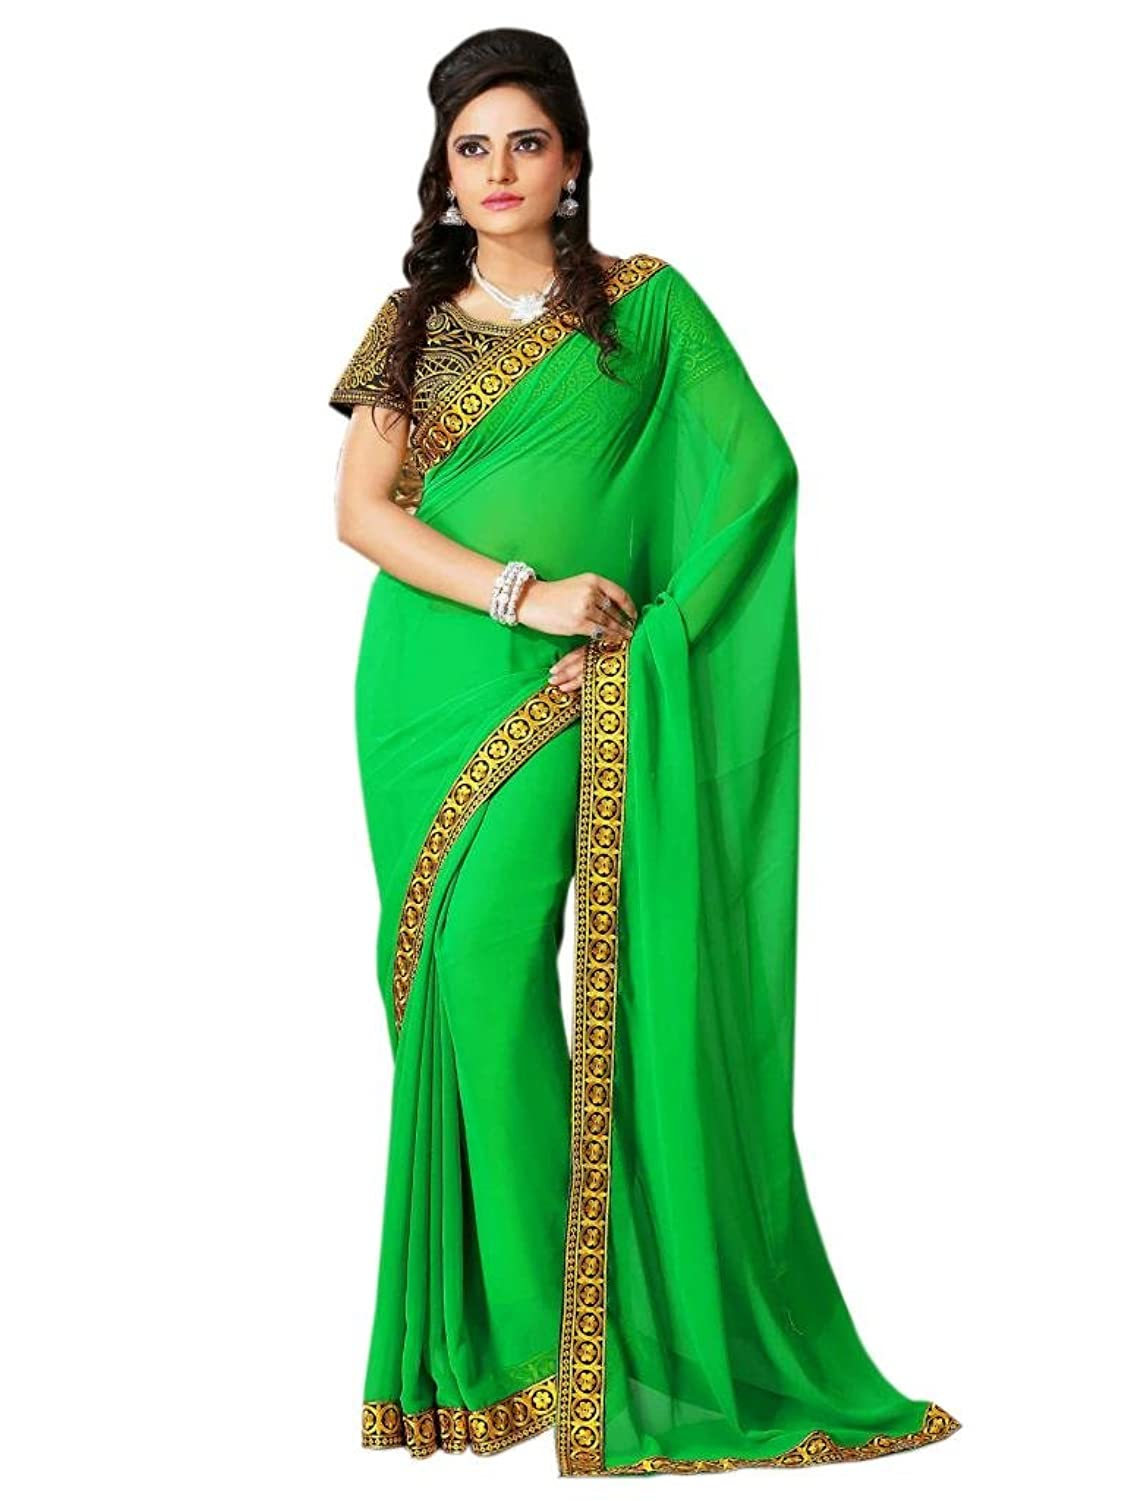 Ethnic Trend Chiffon Green Saree With Golden Border